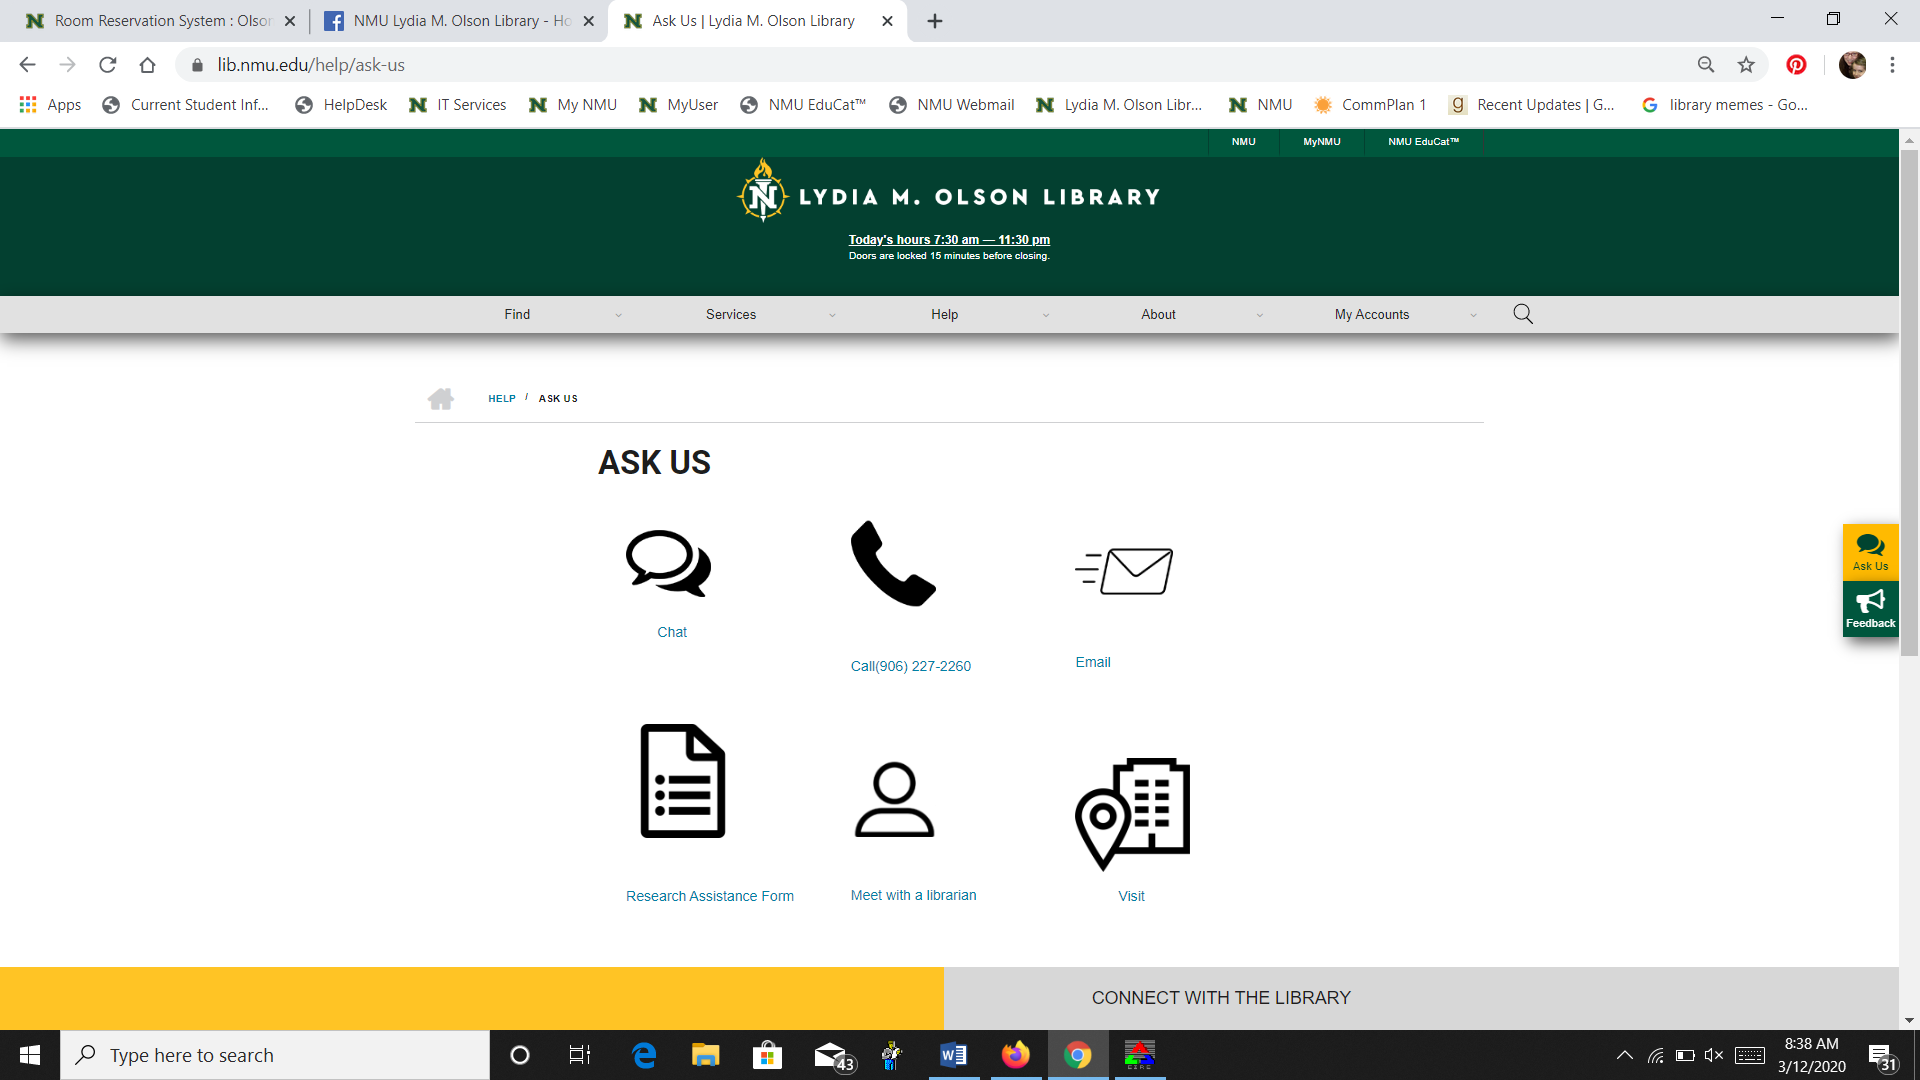 Olson Library webpage; Contact Us page with icons and contact information